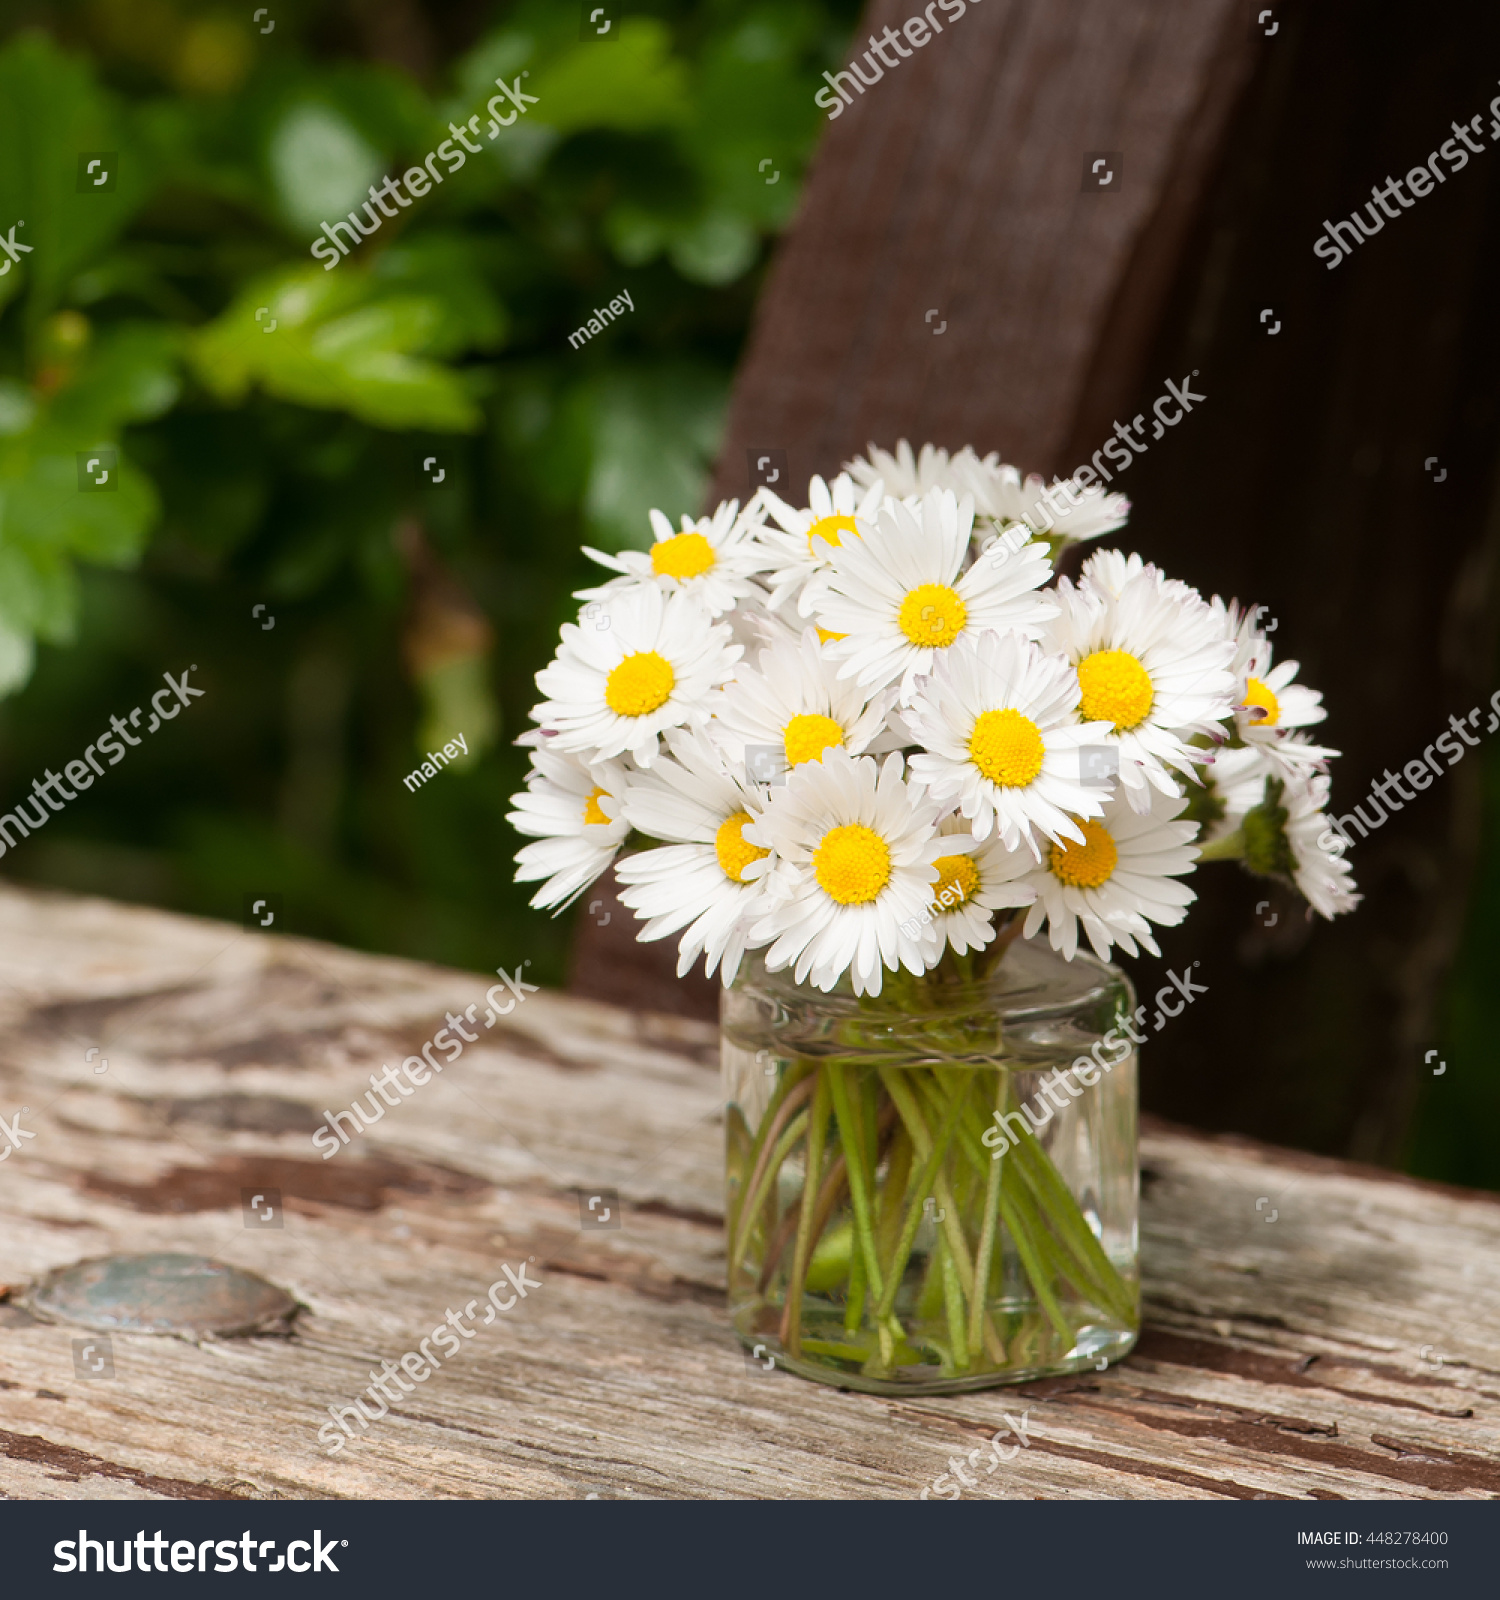 Bunch daisies glass vase on wooden stock photo 448278400 bunch of daisies in glass vase on wooden board decoration with wild flowers meadow reviewsmspy